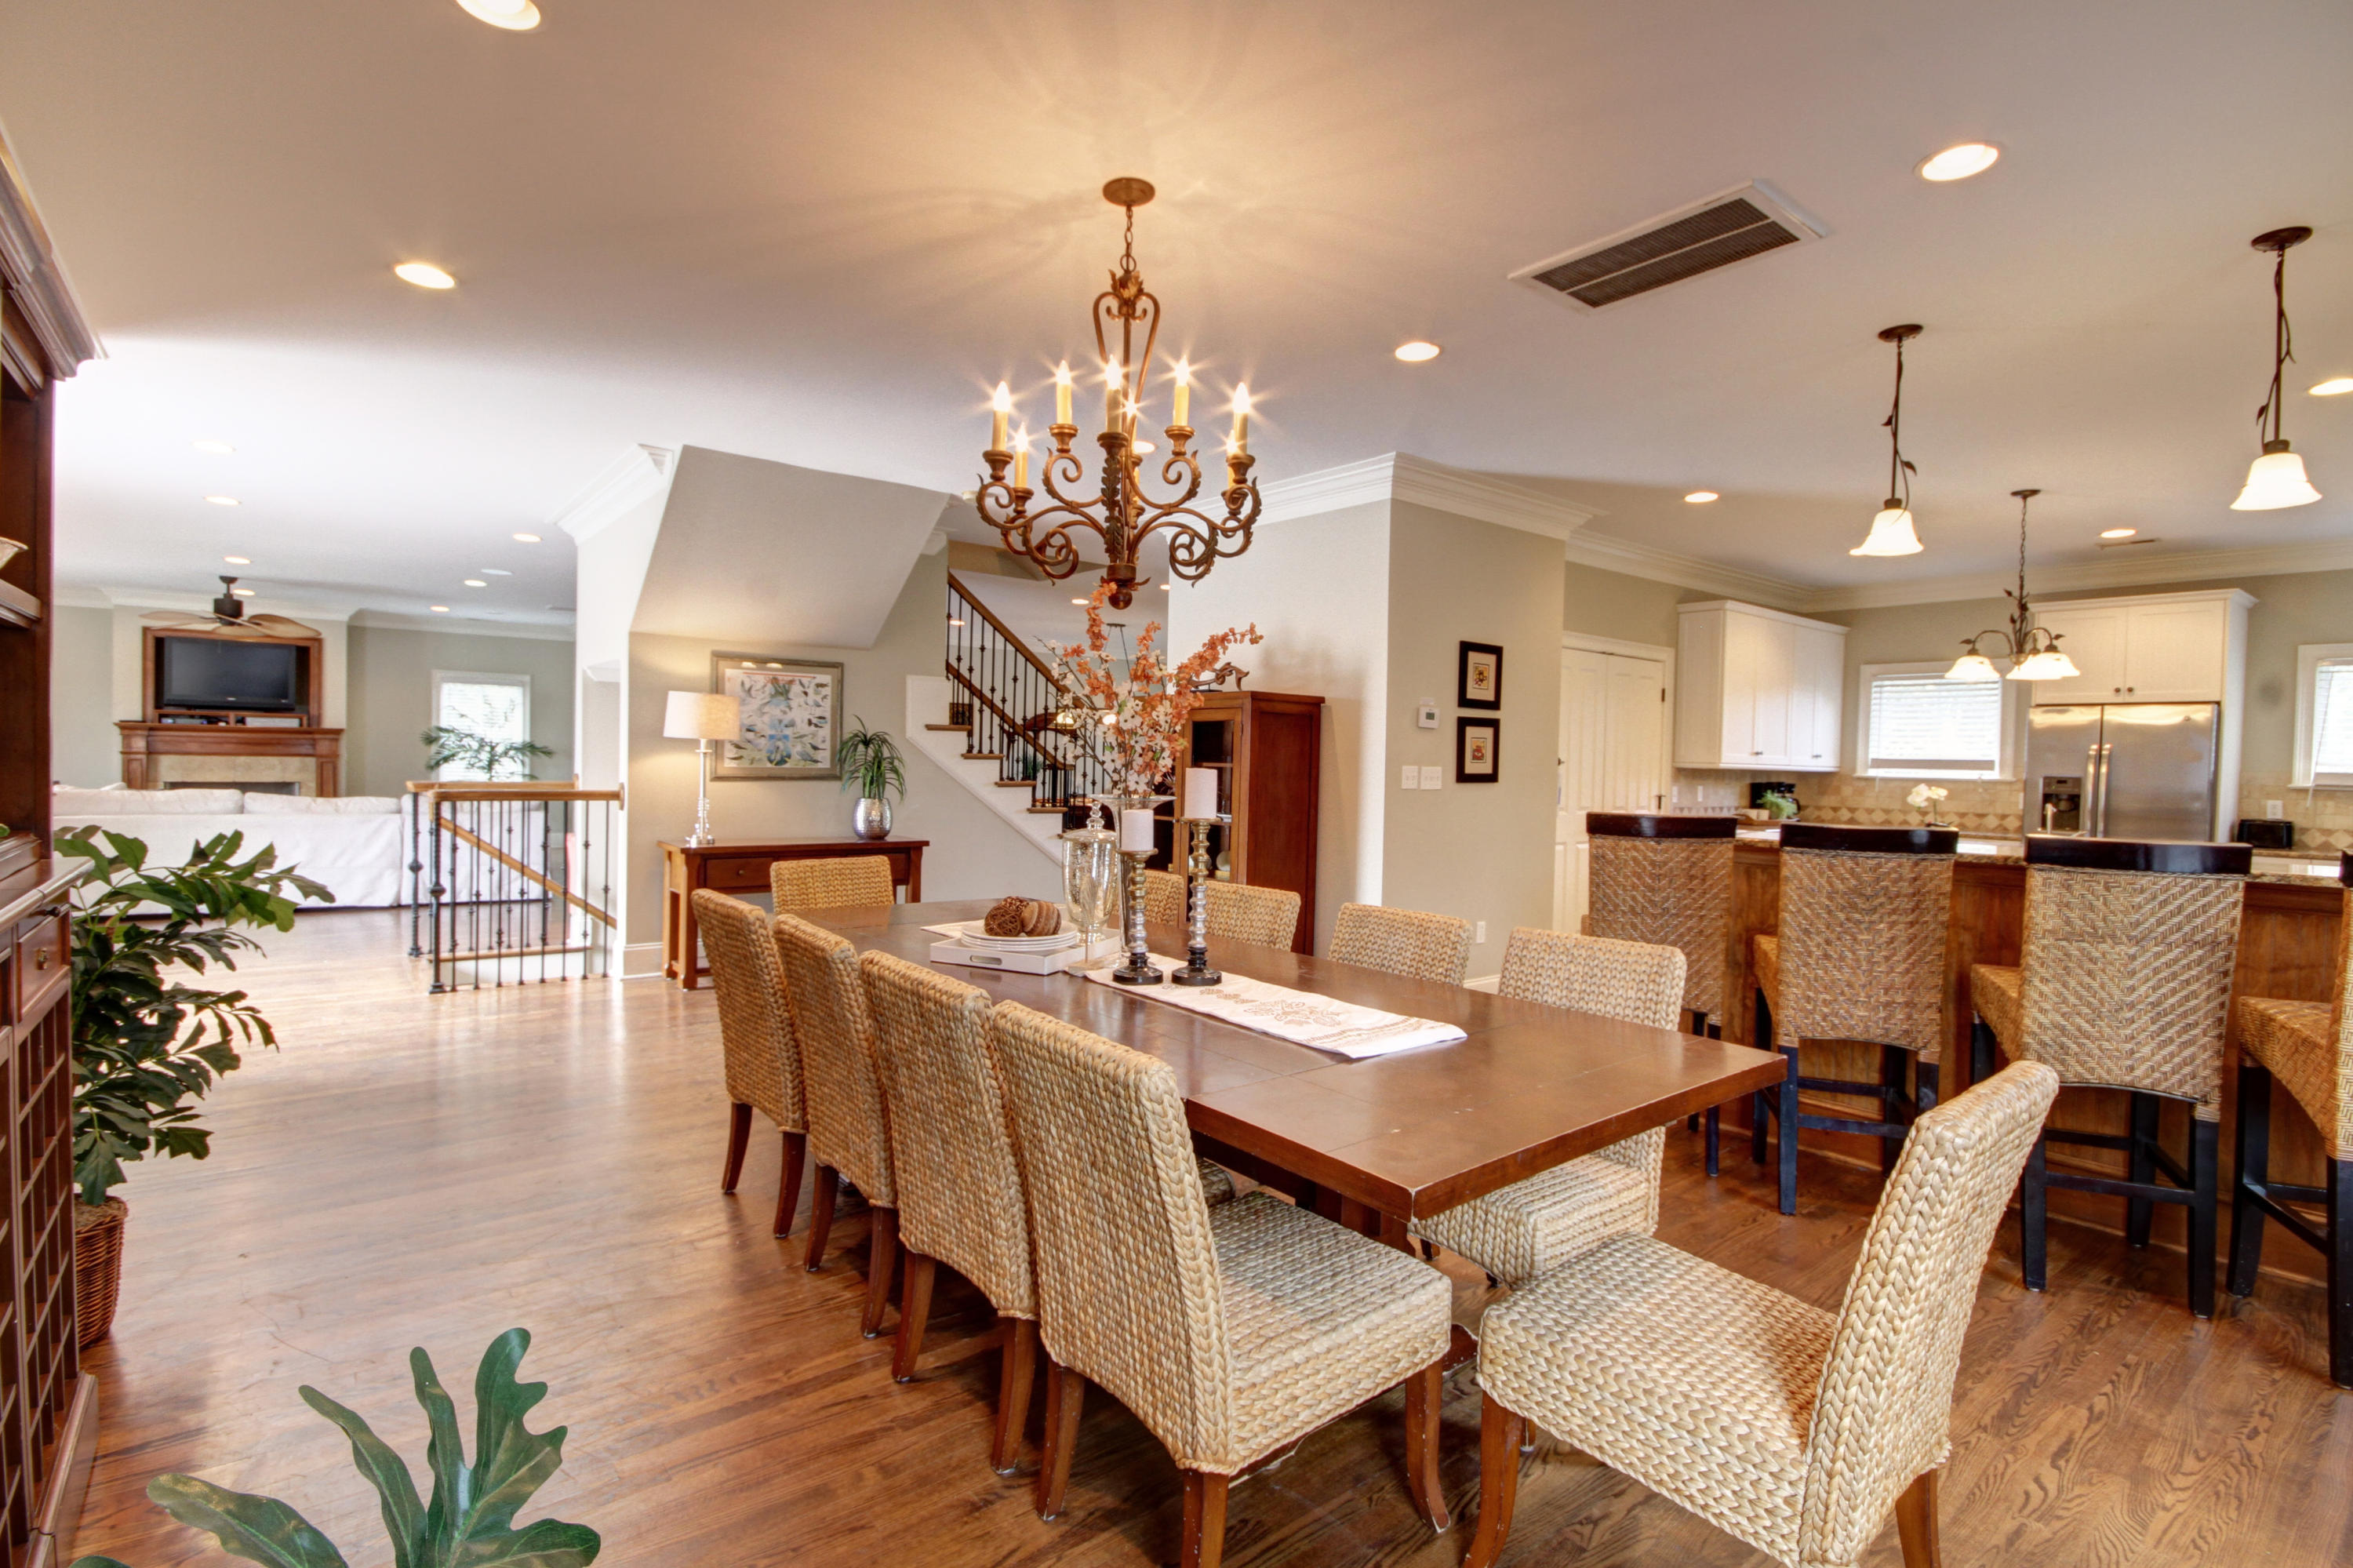 Wild Dunes Homes For Sale - 7 Abalone, Isle of Palms, SC - 3